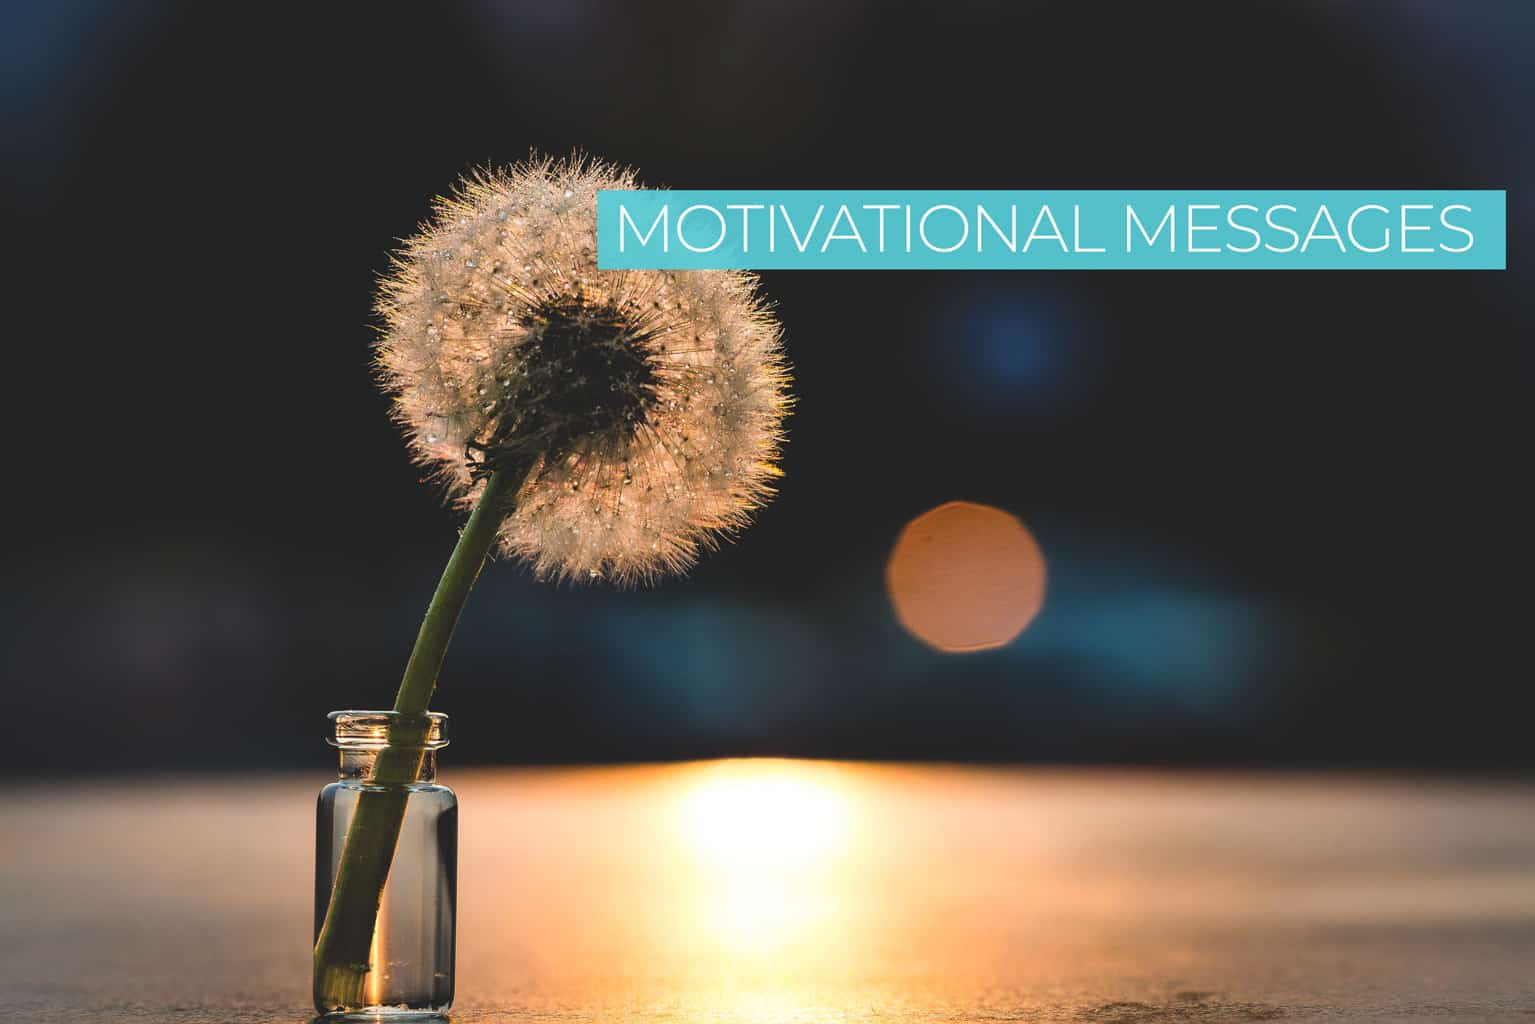 Motivational Messages - Inspirational Quotes